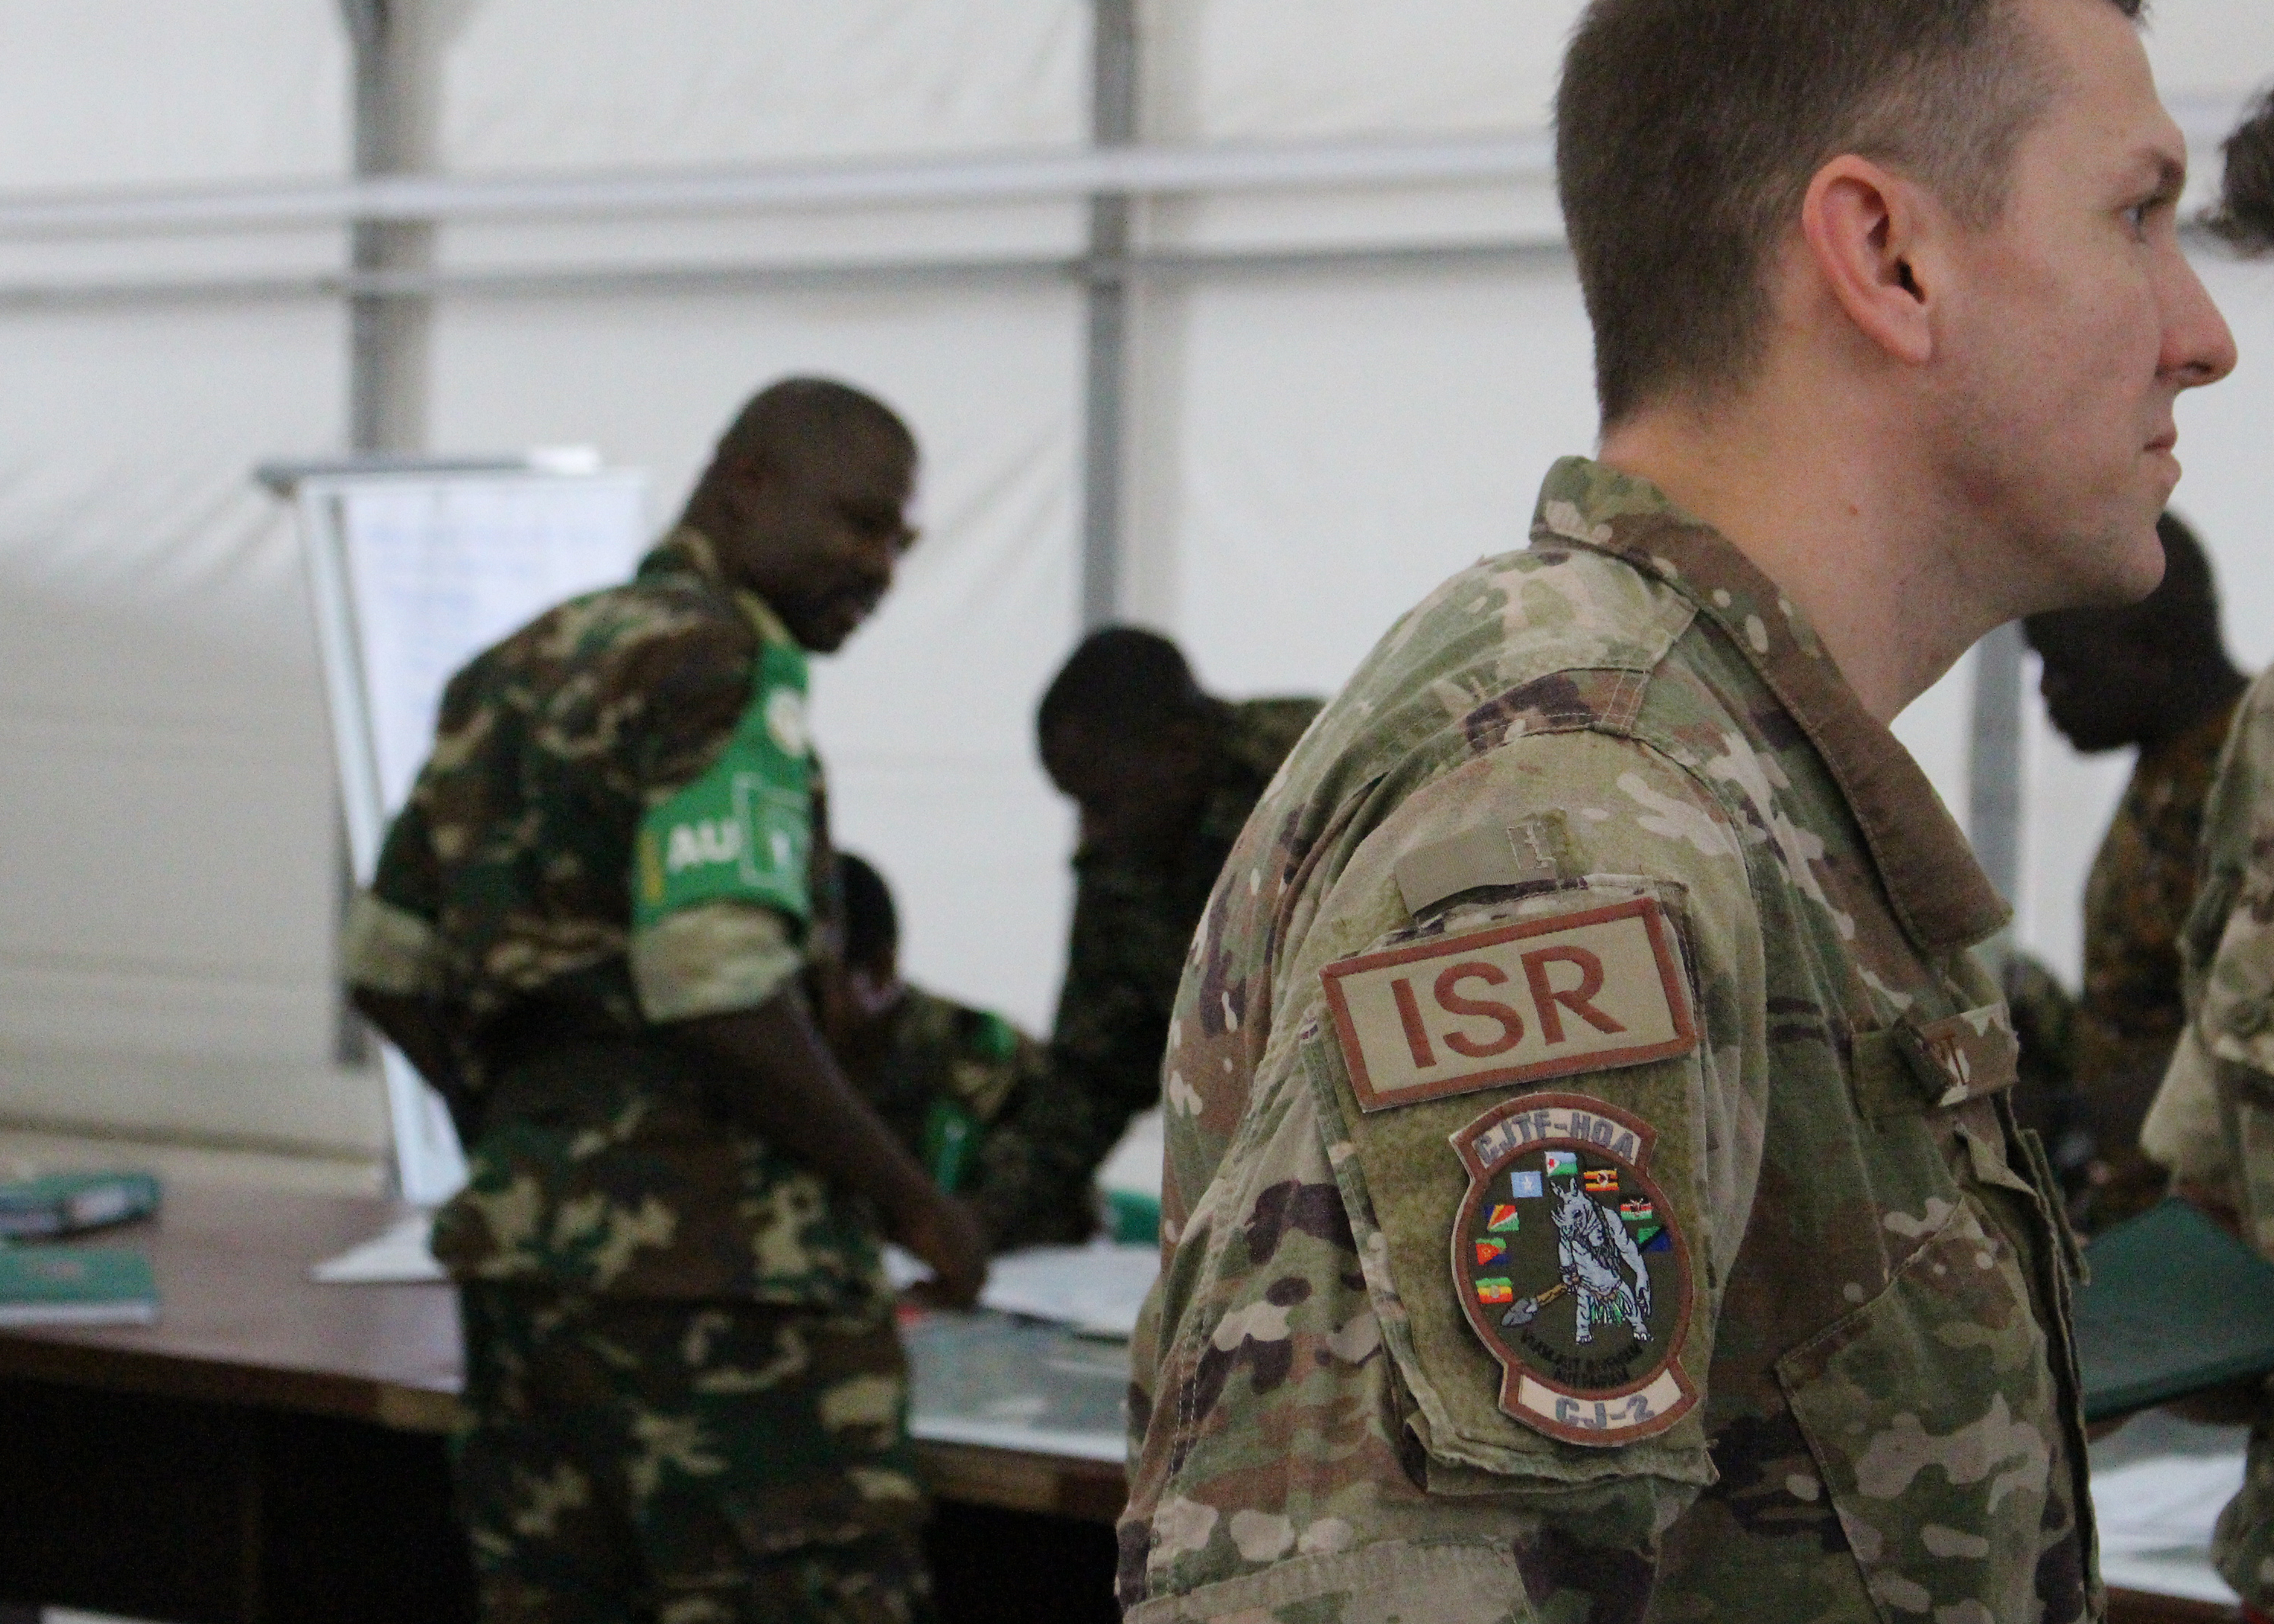 U.S. Air Force Capt. Brian Hurt, Combined Joint Task Force-Horn of Africa Intelligence Directorate collection manager, advises and assist during an intelligence, surveillance and reconnaissance (ISR) course in Mogadishu, Somalia, Aug. 7, 2017. Soldiers from five countries supporting the African Union Mission in Somalia are taking the British-led ISR course to strengthen efforts countering violent extremist organizations like al-Shabaab within East Africa. (Photo courtesy U.S. Air Force Capt. Brian Hurt/Released)